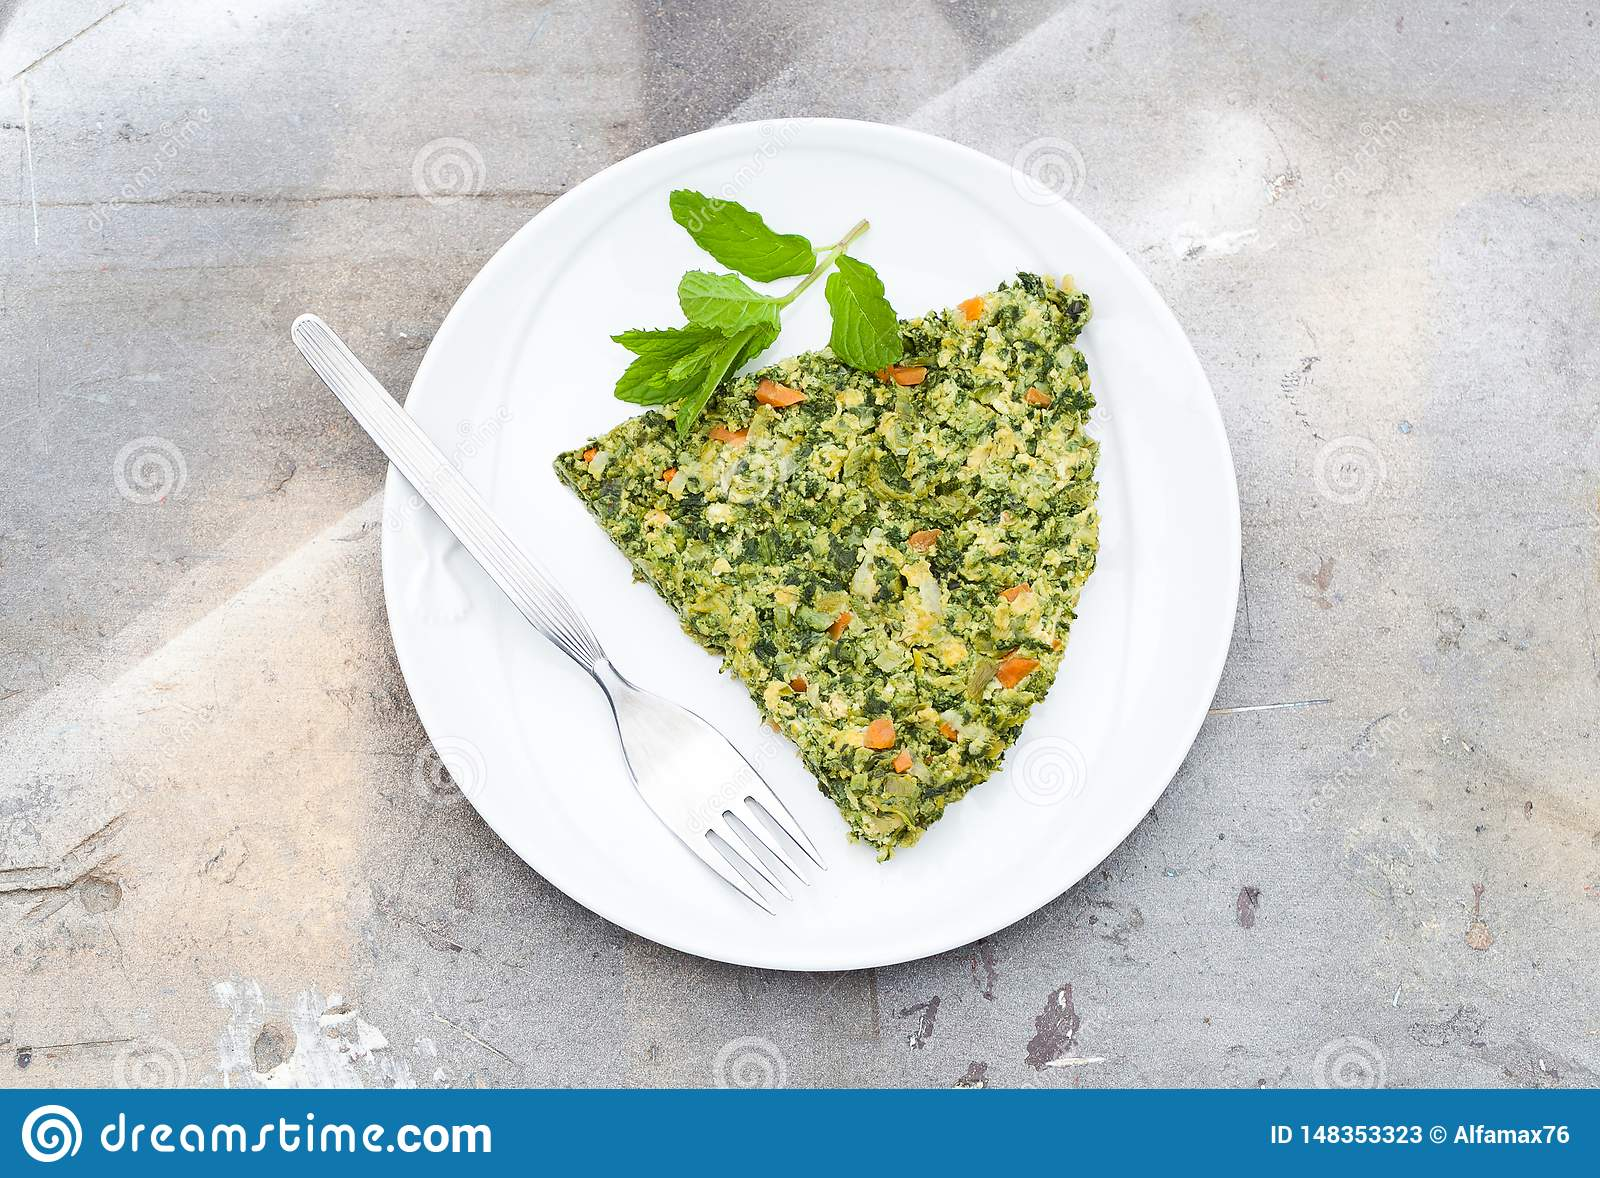 Omelet made of eggs, green asparagus, pea, carrot,cheese, parsley and mint, wood background with natural light